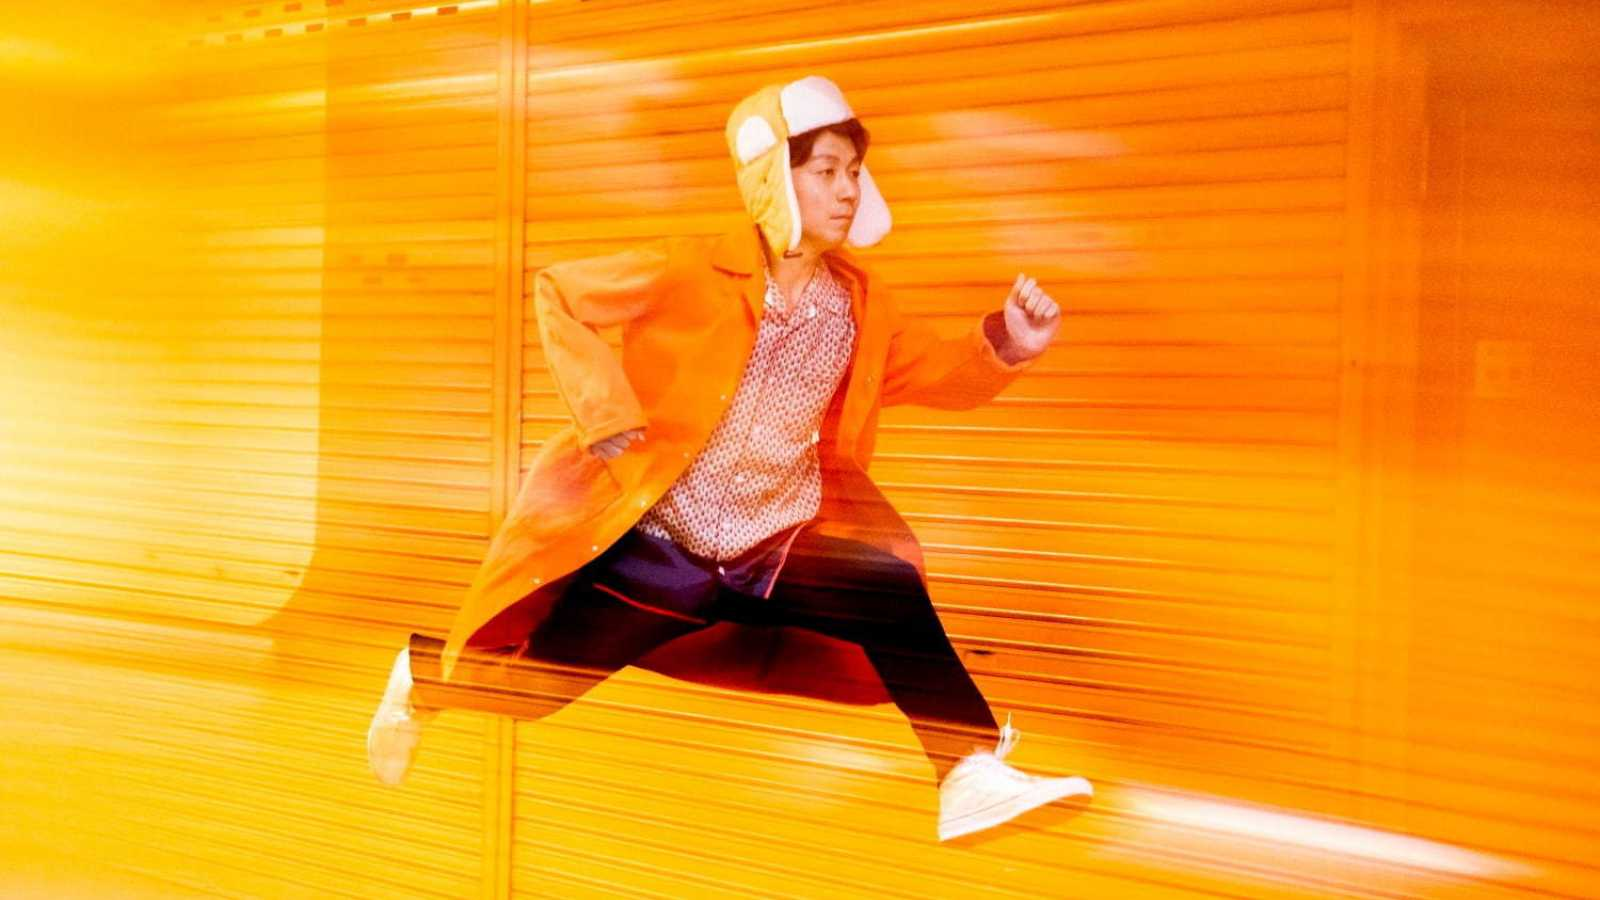 Kenmochi Hidefumi - FOOTWORK © Kenmochi Hidefumi. All Rights Reserved.